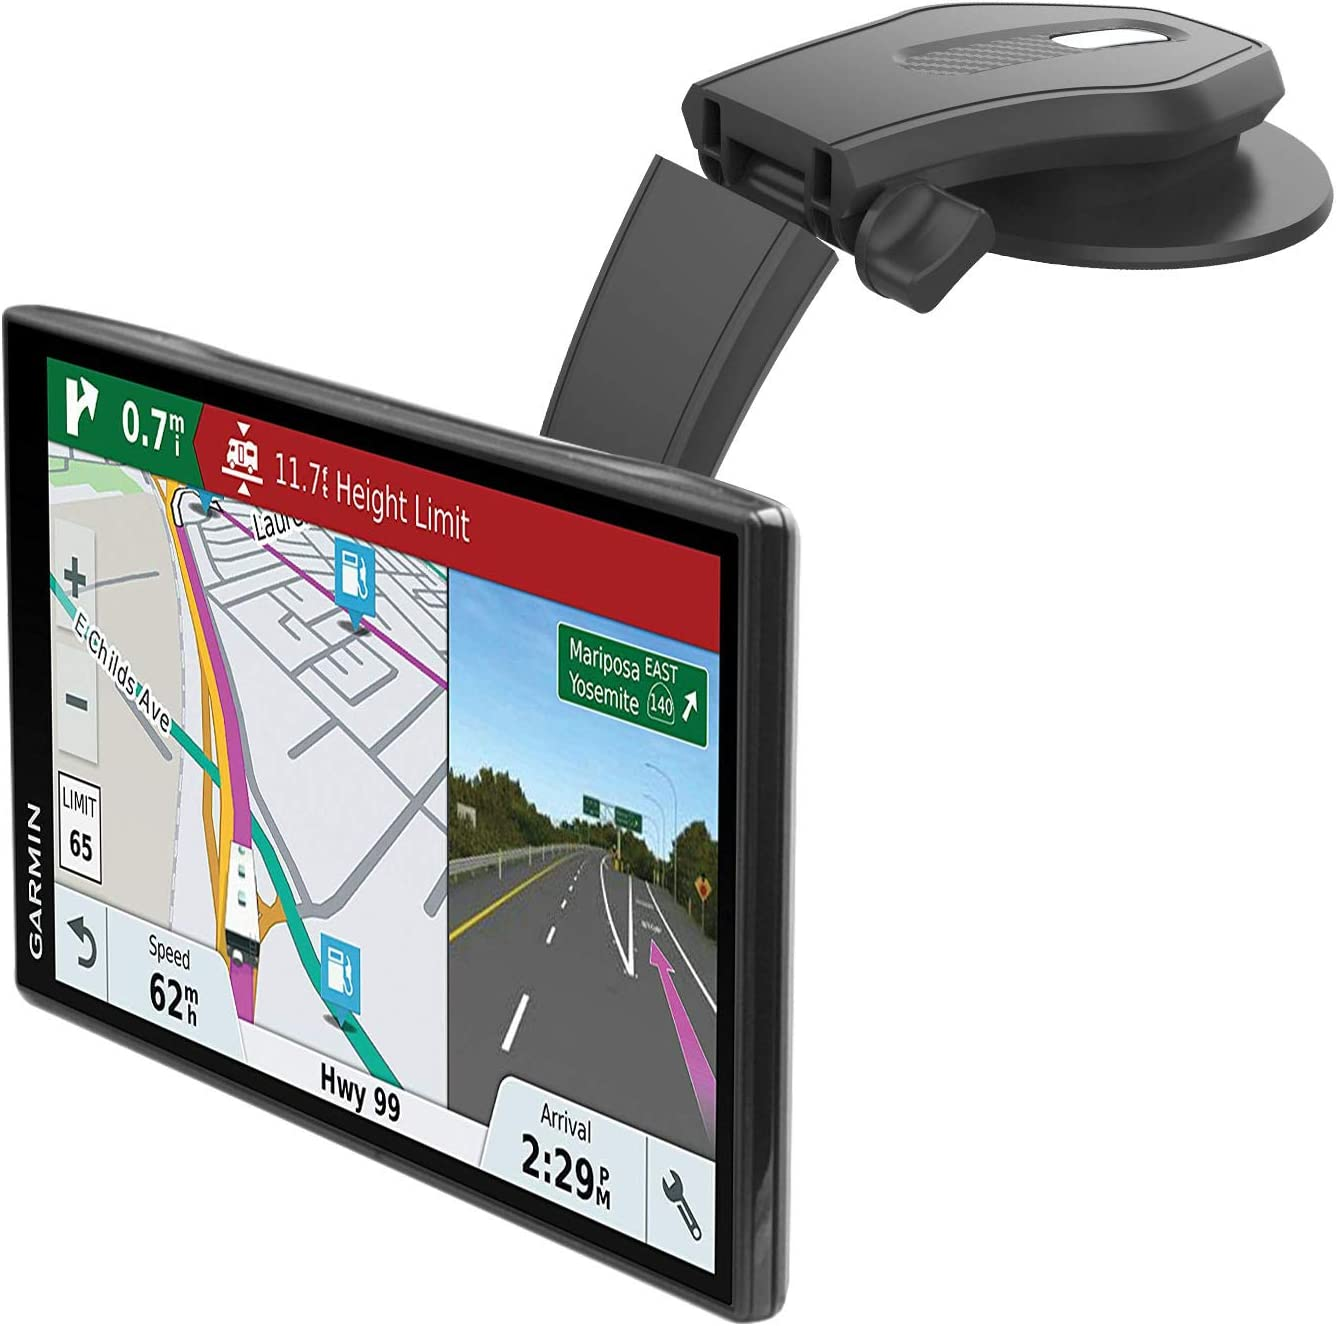 Flip Down GPS Car Dashboard Mount for Garmin Portable Navigators, 1Zero Replacement Mounting Base Stick On Dash Holder with Adjustbale Arm for All Garmins Nuvi Dezl Drivesmart DriveLuxe